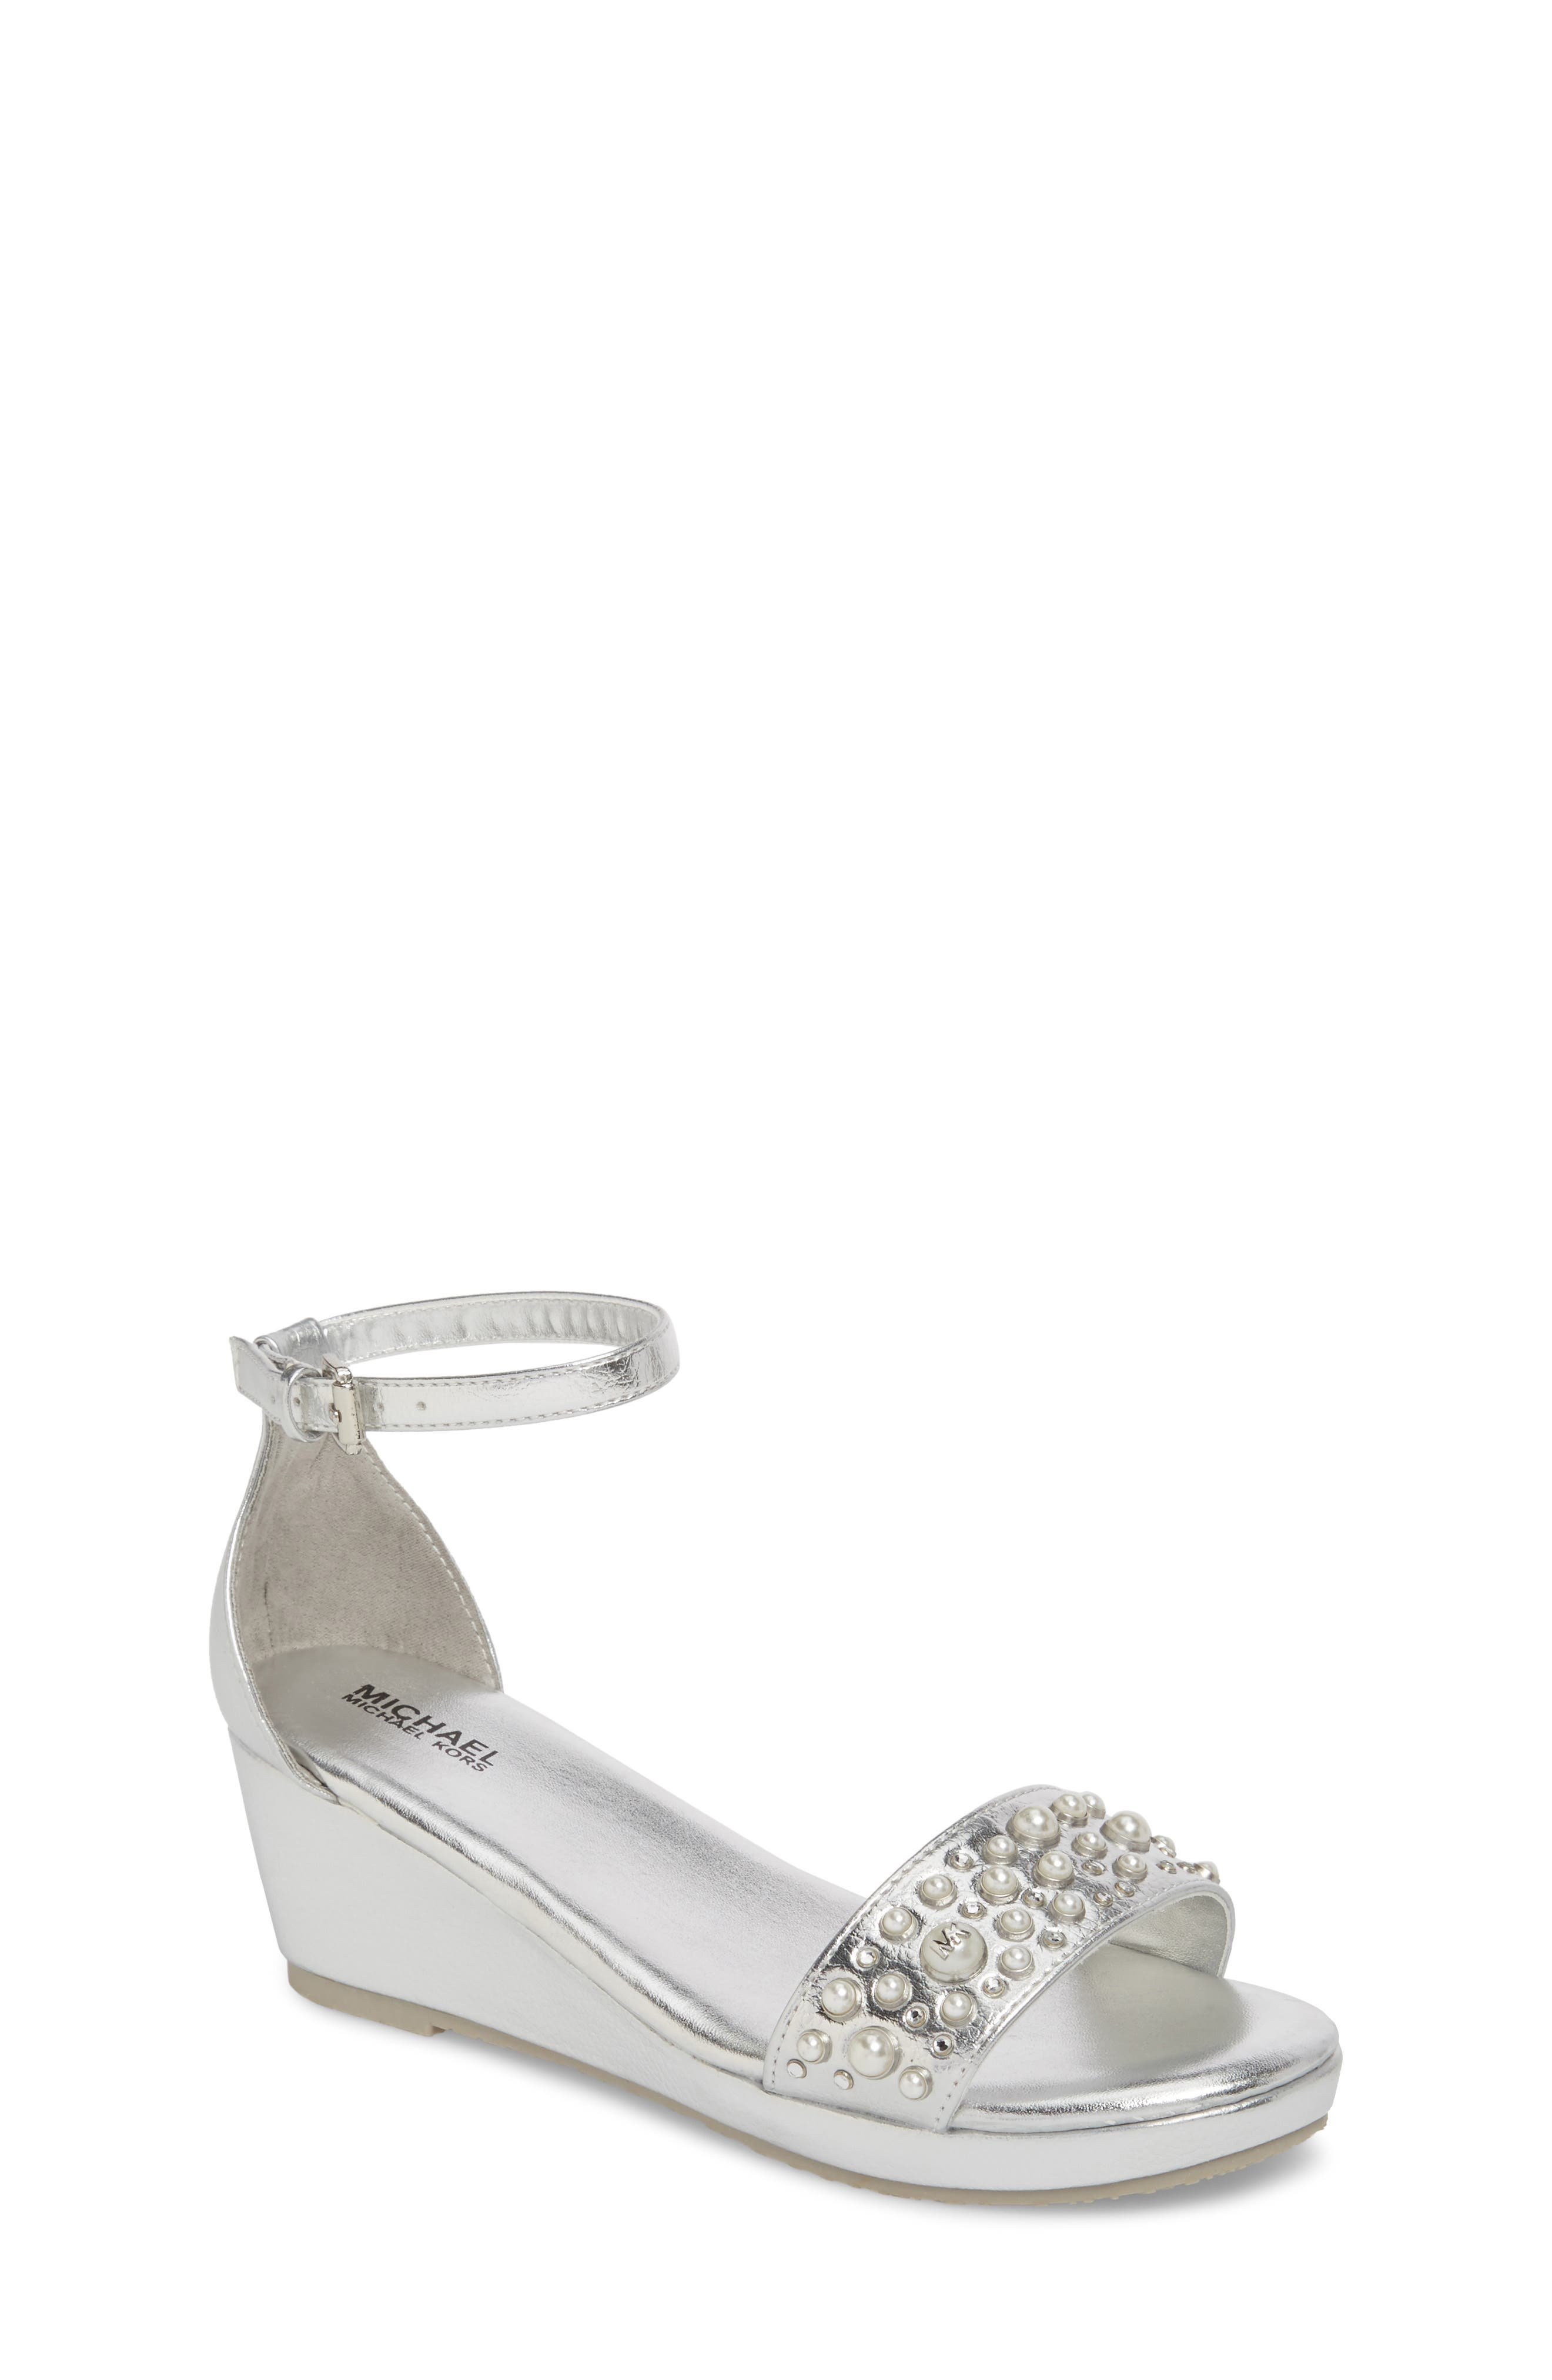 Cate Embellished Wedge Sandal,                             Main thumbnail 1, color,                             Silver